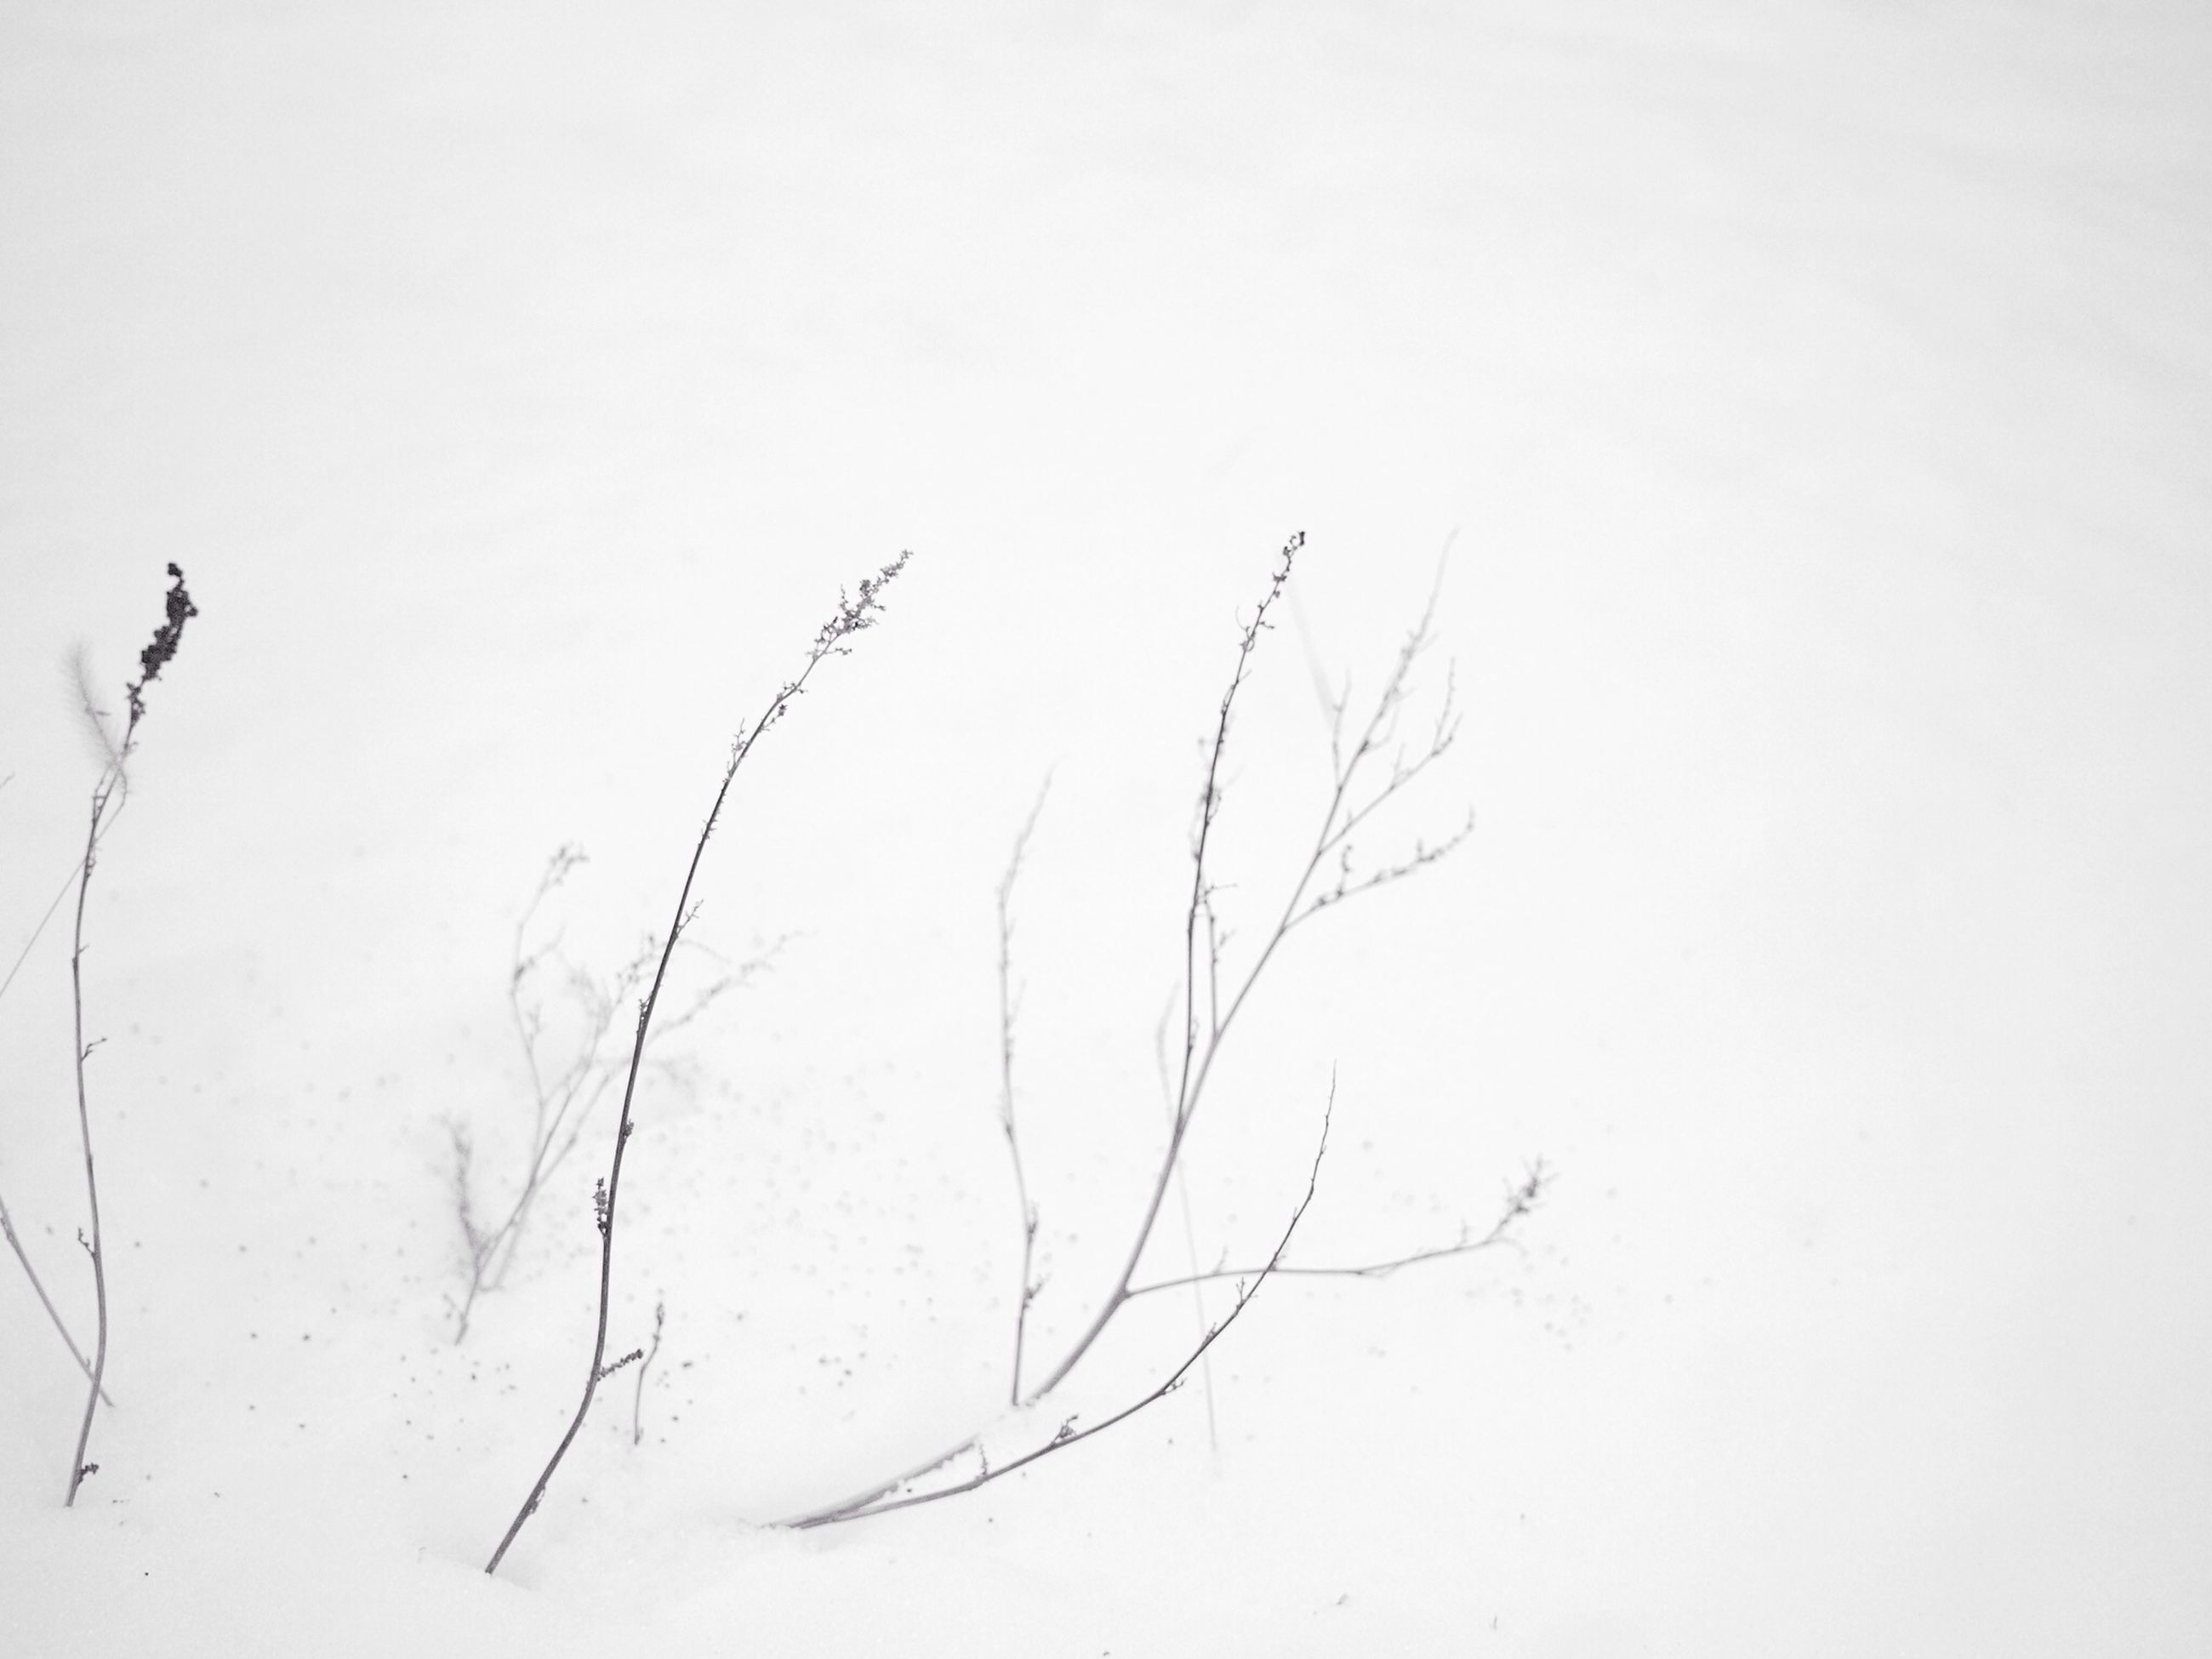 copy space, white background, clear sky, nature, cold temperature, tranquility, winter, bare tree, studio shot, branch, dead plant, low angle view, no people, snow, dry, beauty in nature, day, weather, outdoors, close-up